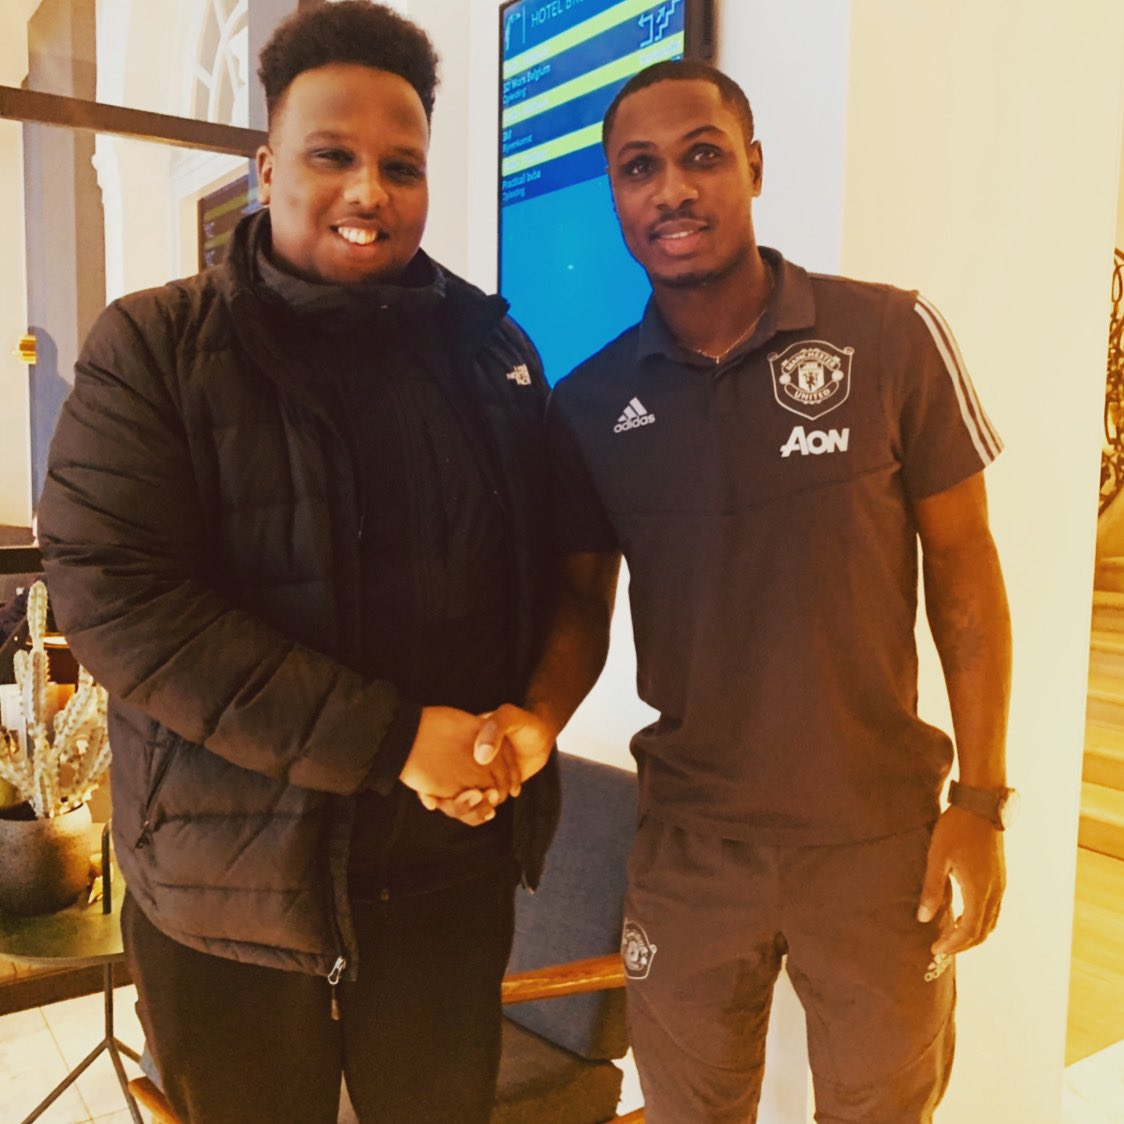 Replying to @Realist_187: Glad you made your dream come true. Good luck and all the best in the future @ighalojude 👏🏿🙏🏿